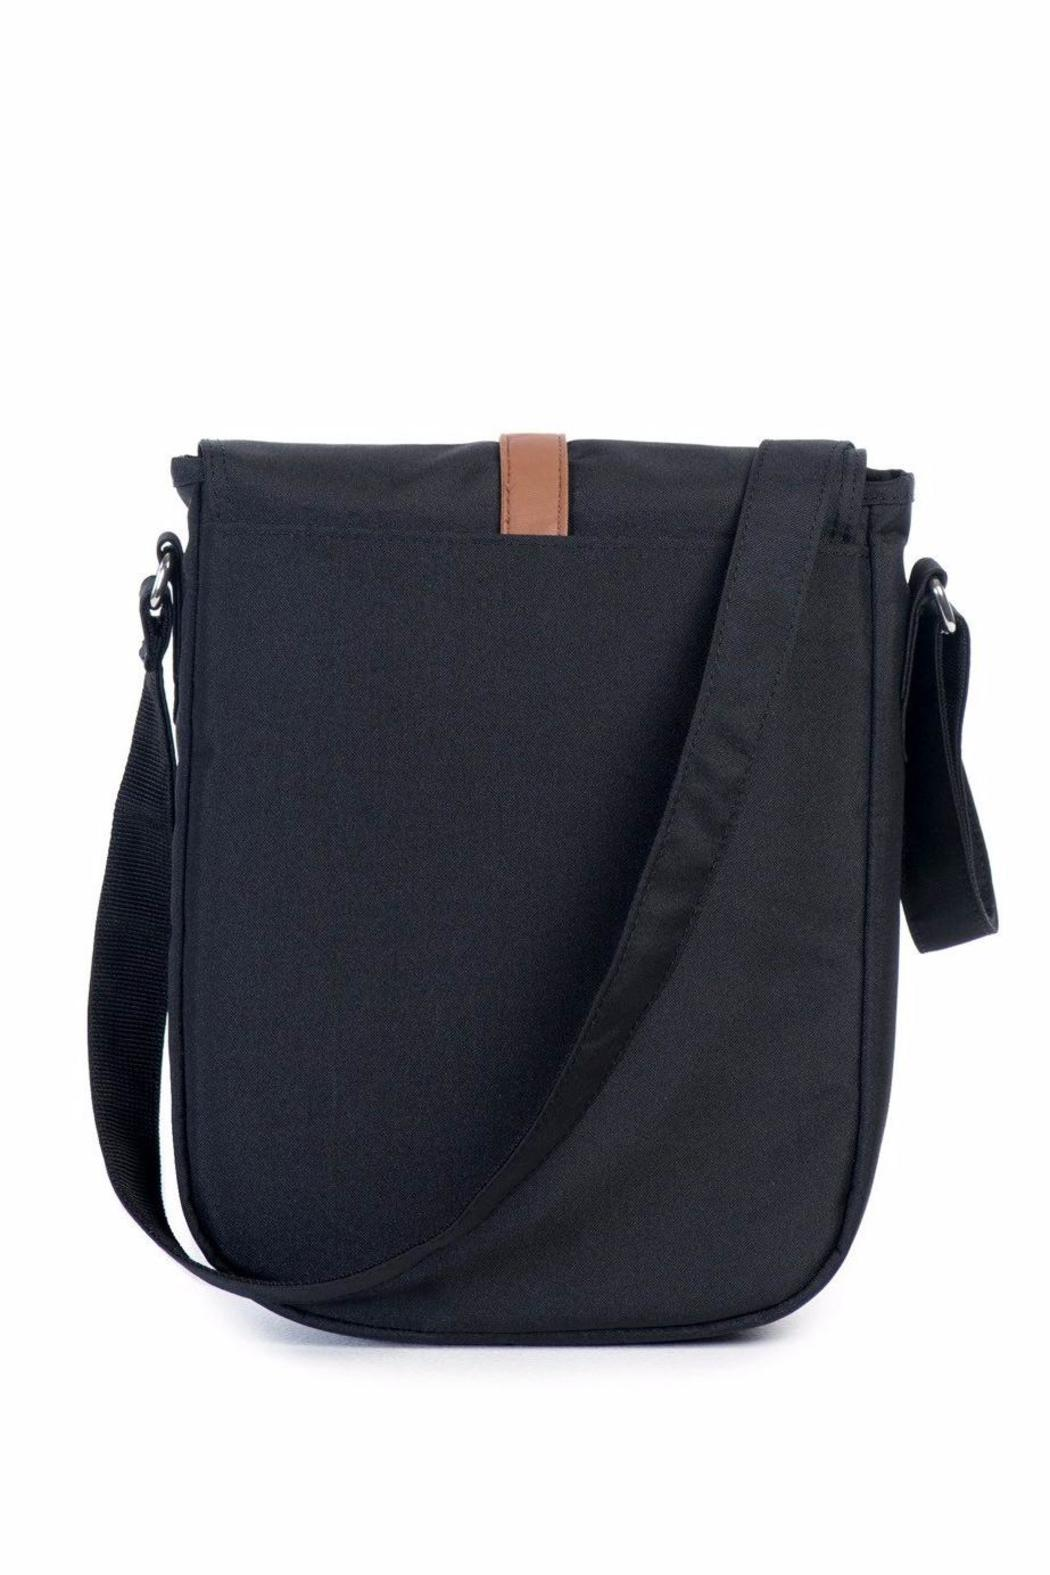 43adbeee59e4 Herschel Supply Co. Kingsgate Crossbody Bag from Mississippi by ...